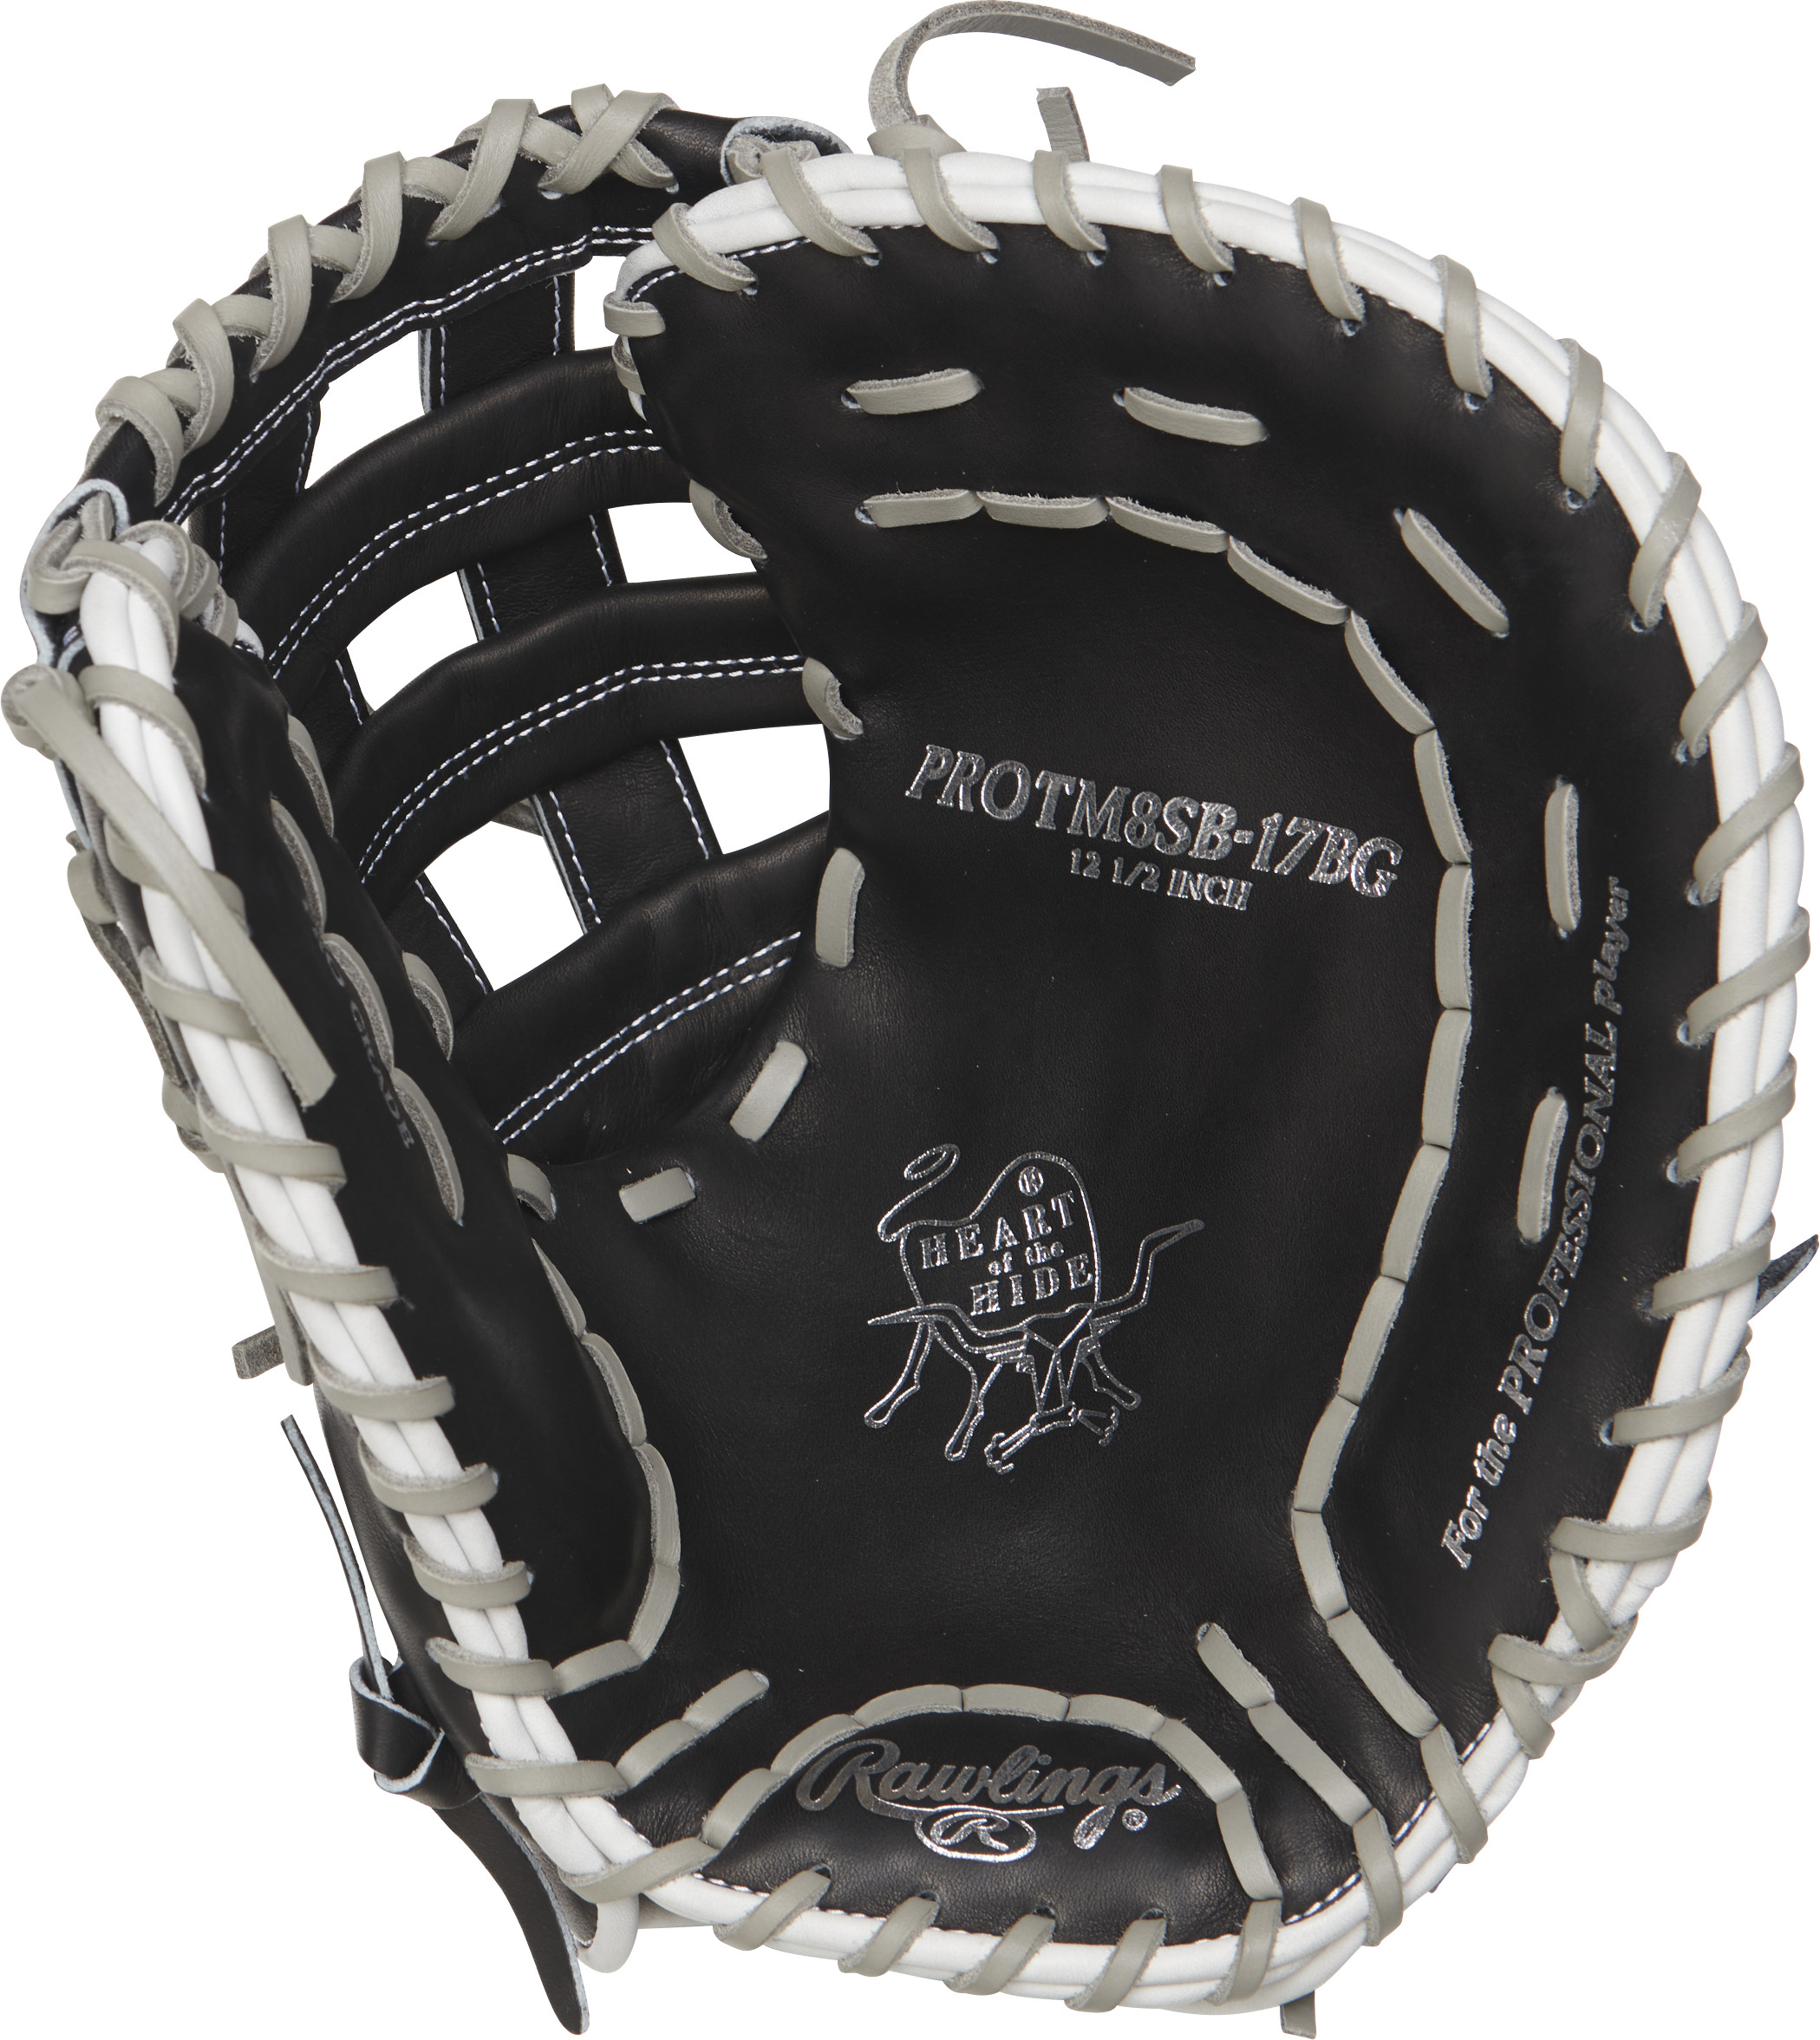 http://www.bestbatdeals.com/images/gloves/rawlings/PROTM8SB-17BG-1.jpg